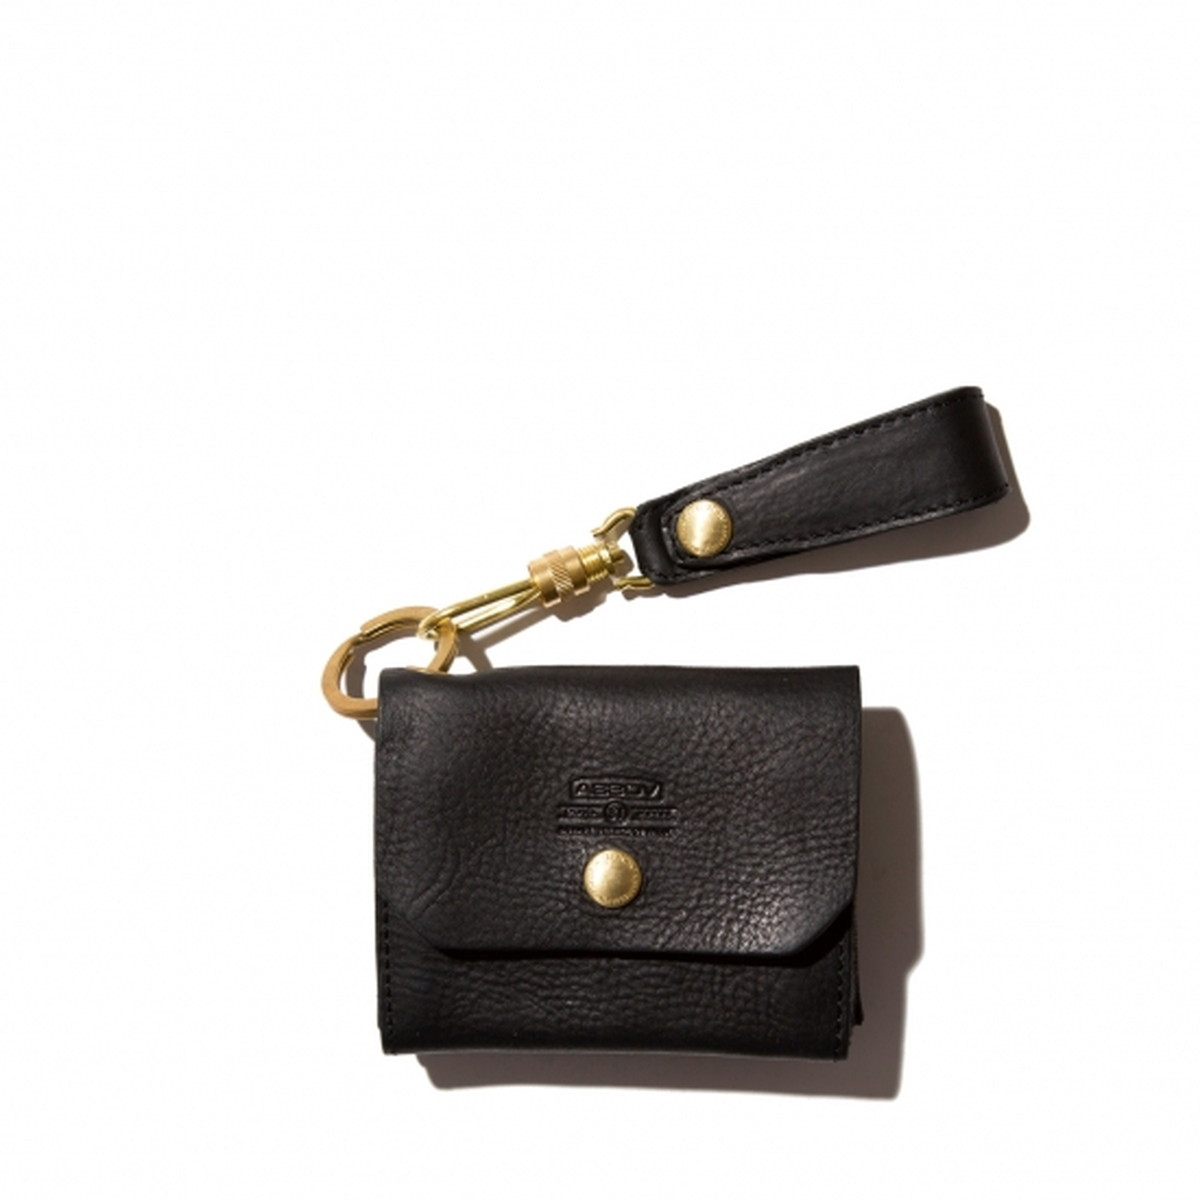 AS2OV公式通販 / AS2OV (アッソブ) OILED SHRINK LEATHER CARD CASE / カードケース 101403